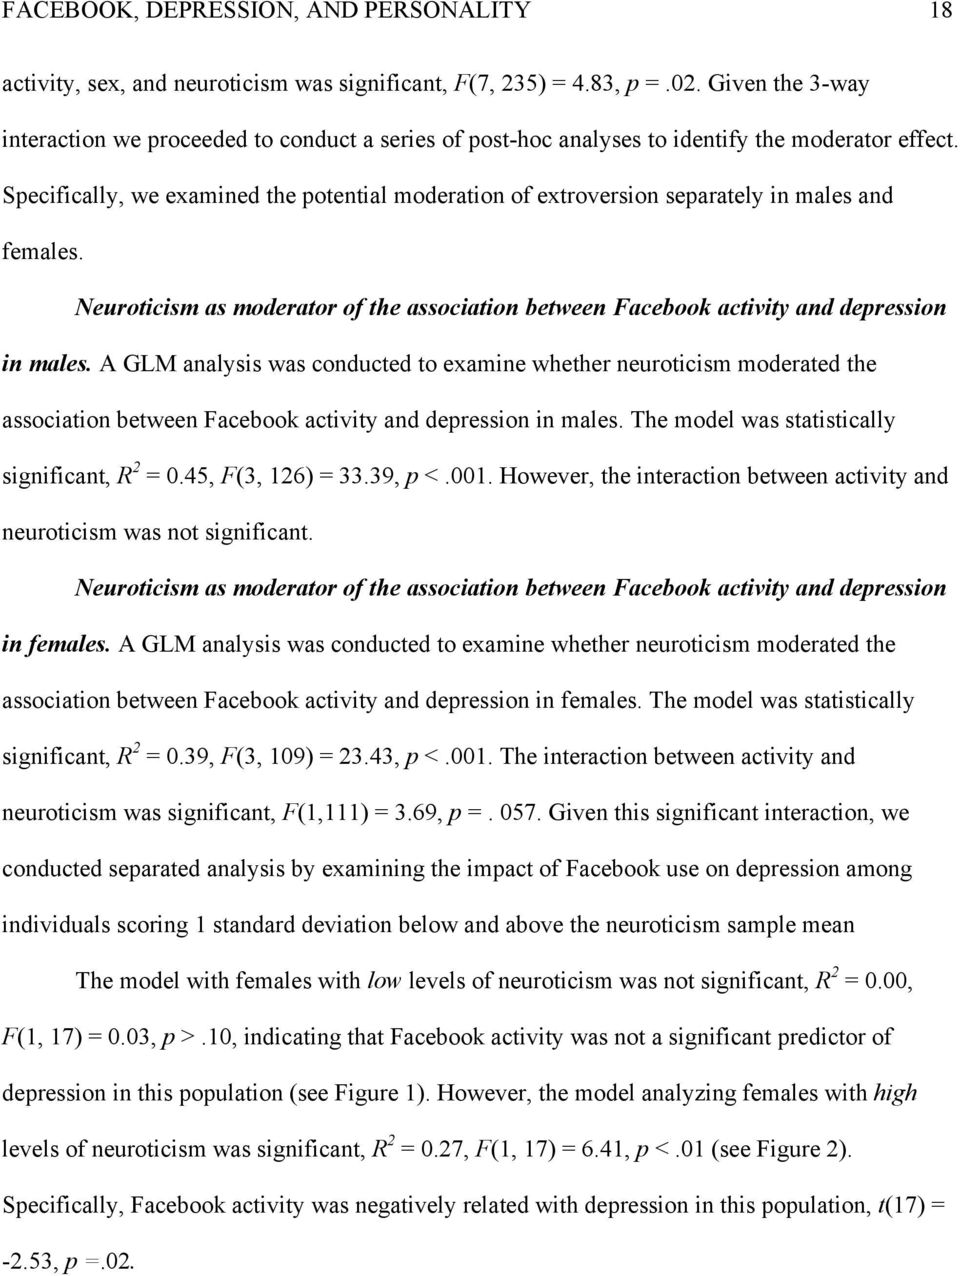 Specifically, we examined the potential moderation of extroversion separately in males and females. Neuroticism as moderator of the association between Facebook activity and depression in males.